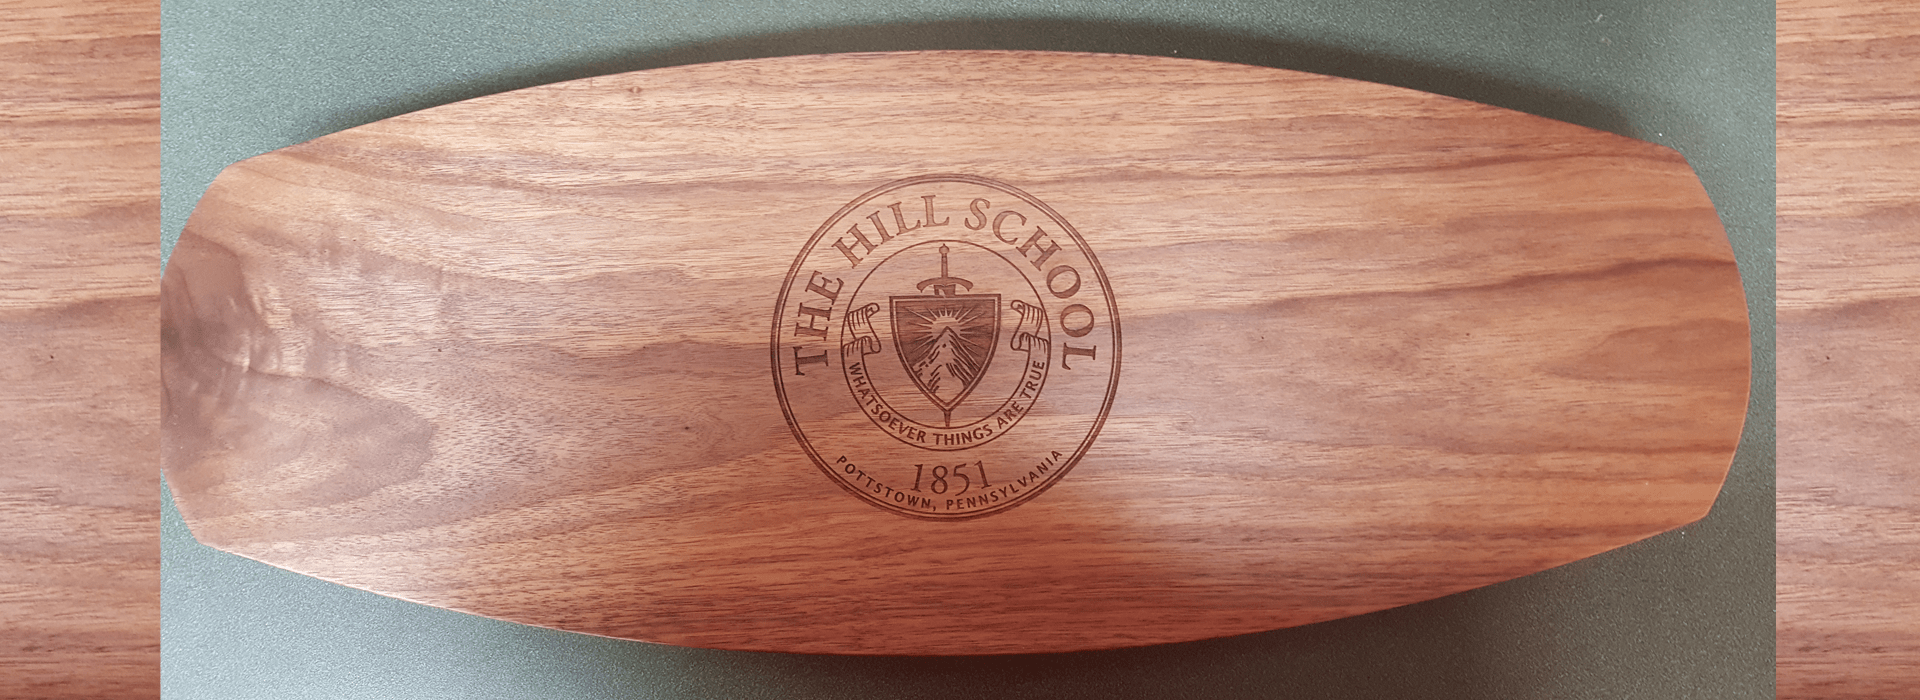 custom wood engravings